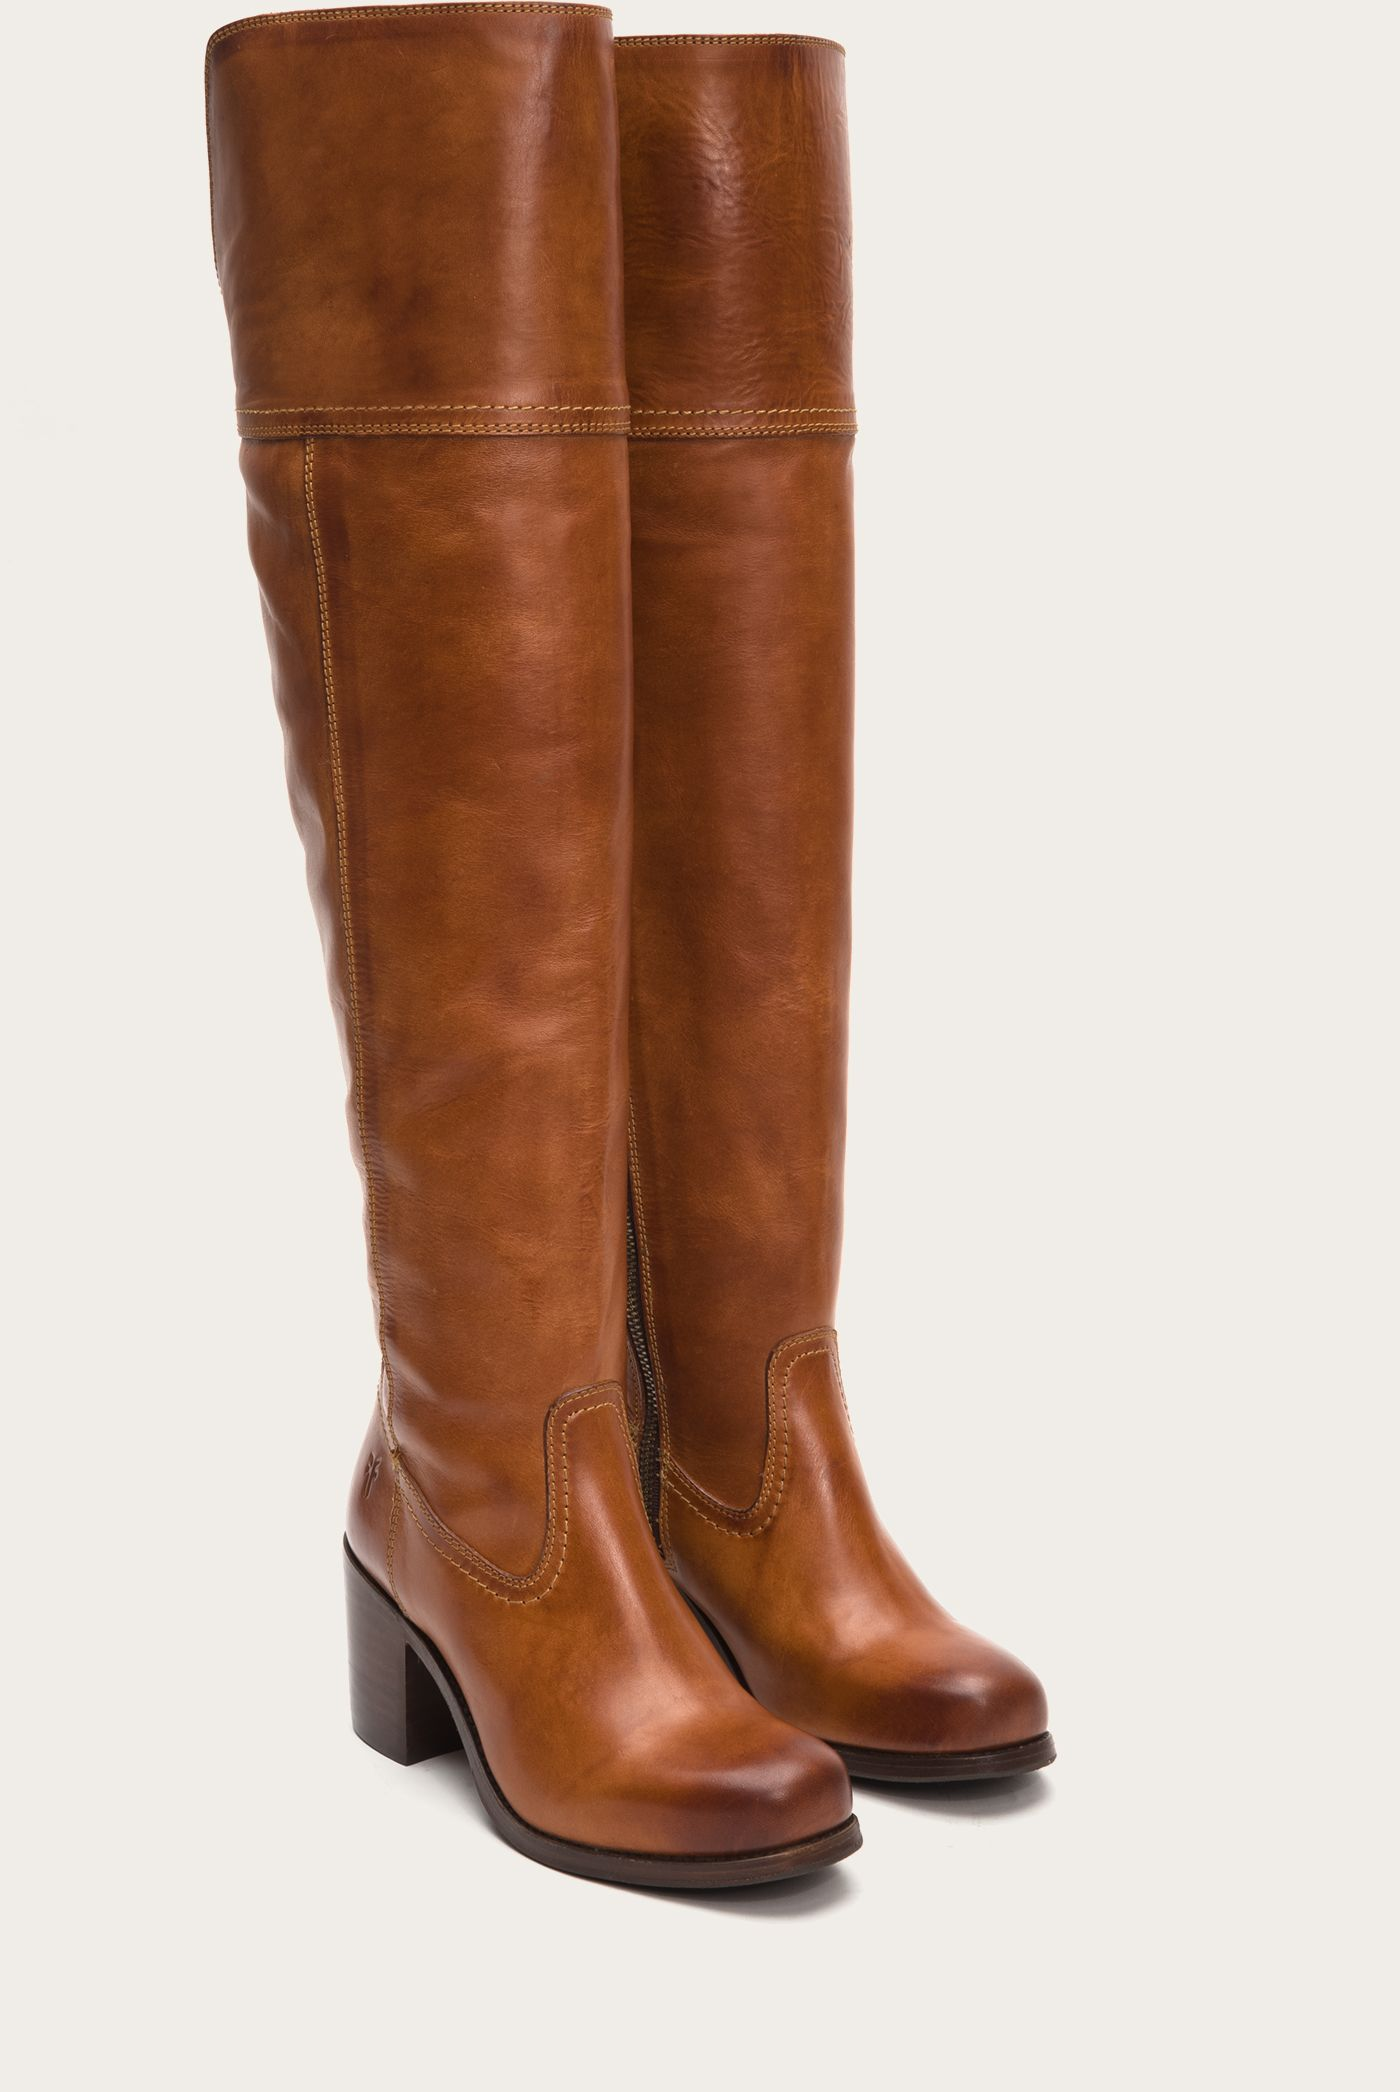 I need these Cognac  Kendall boots in my